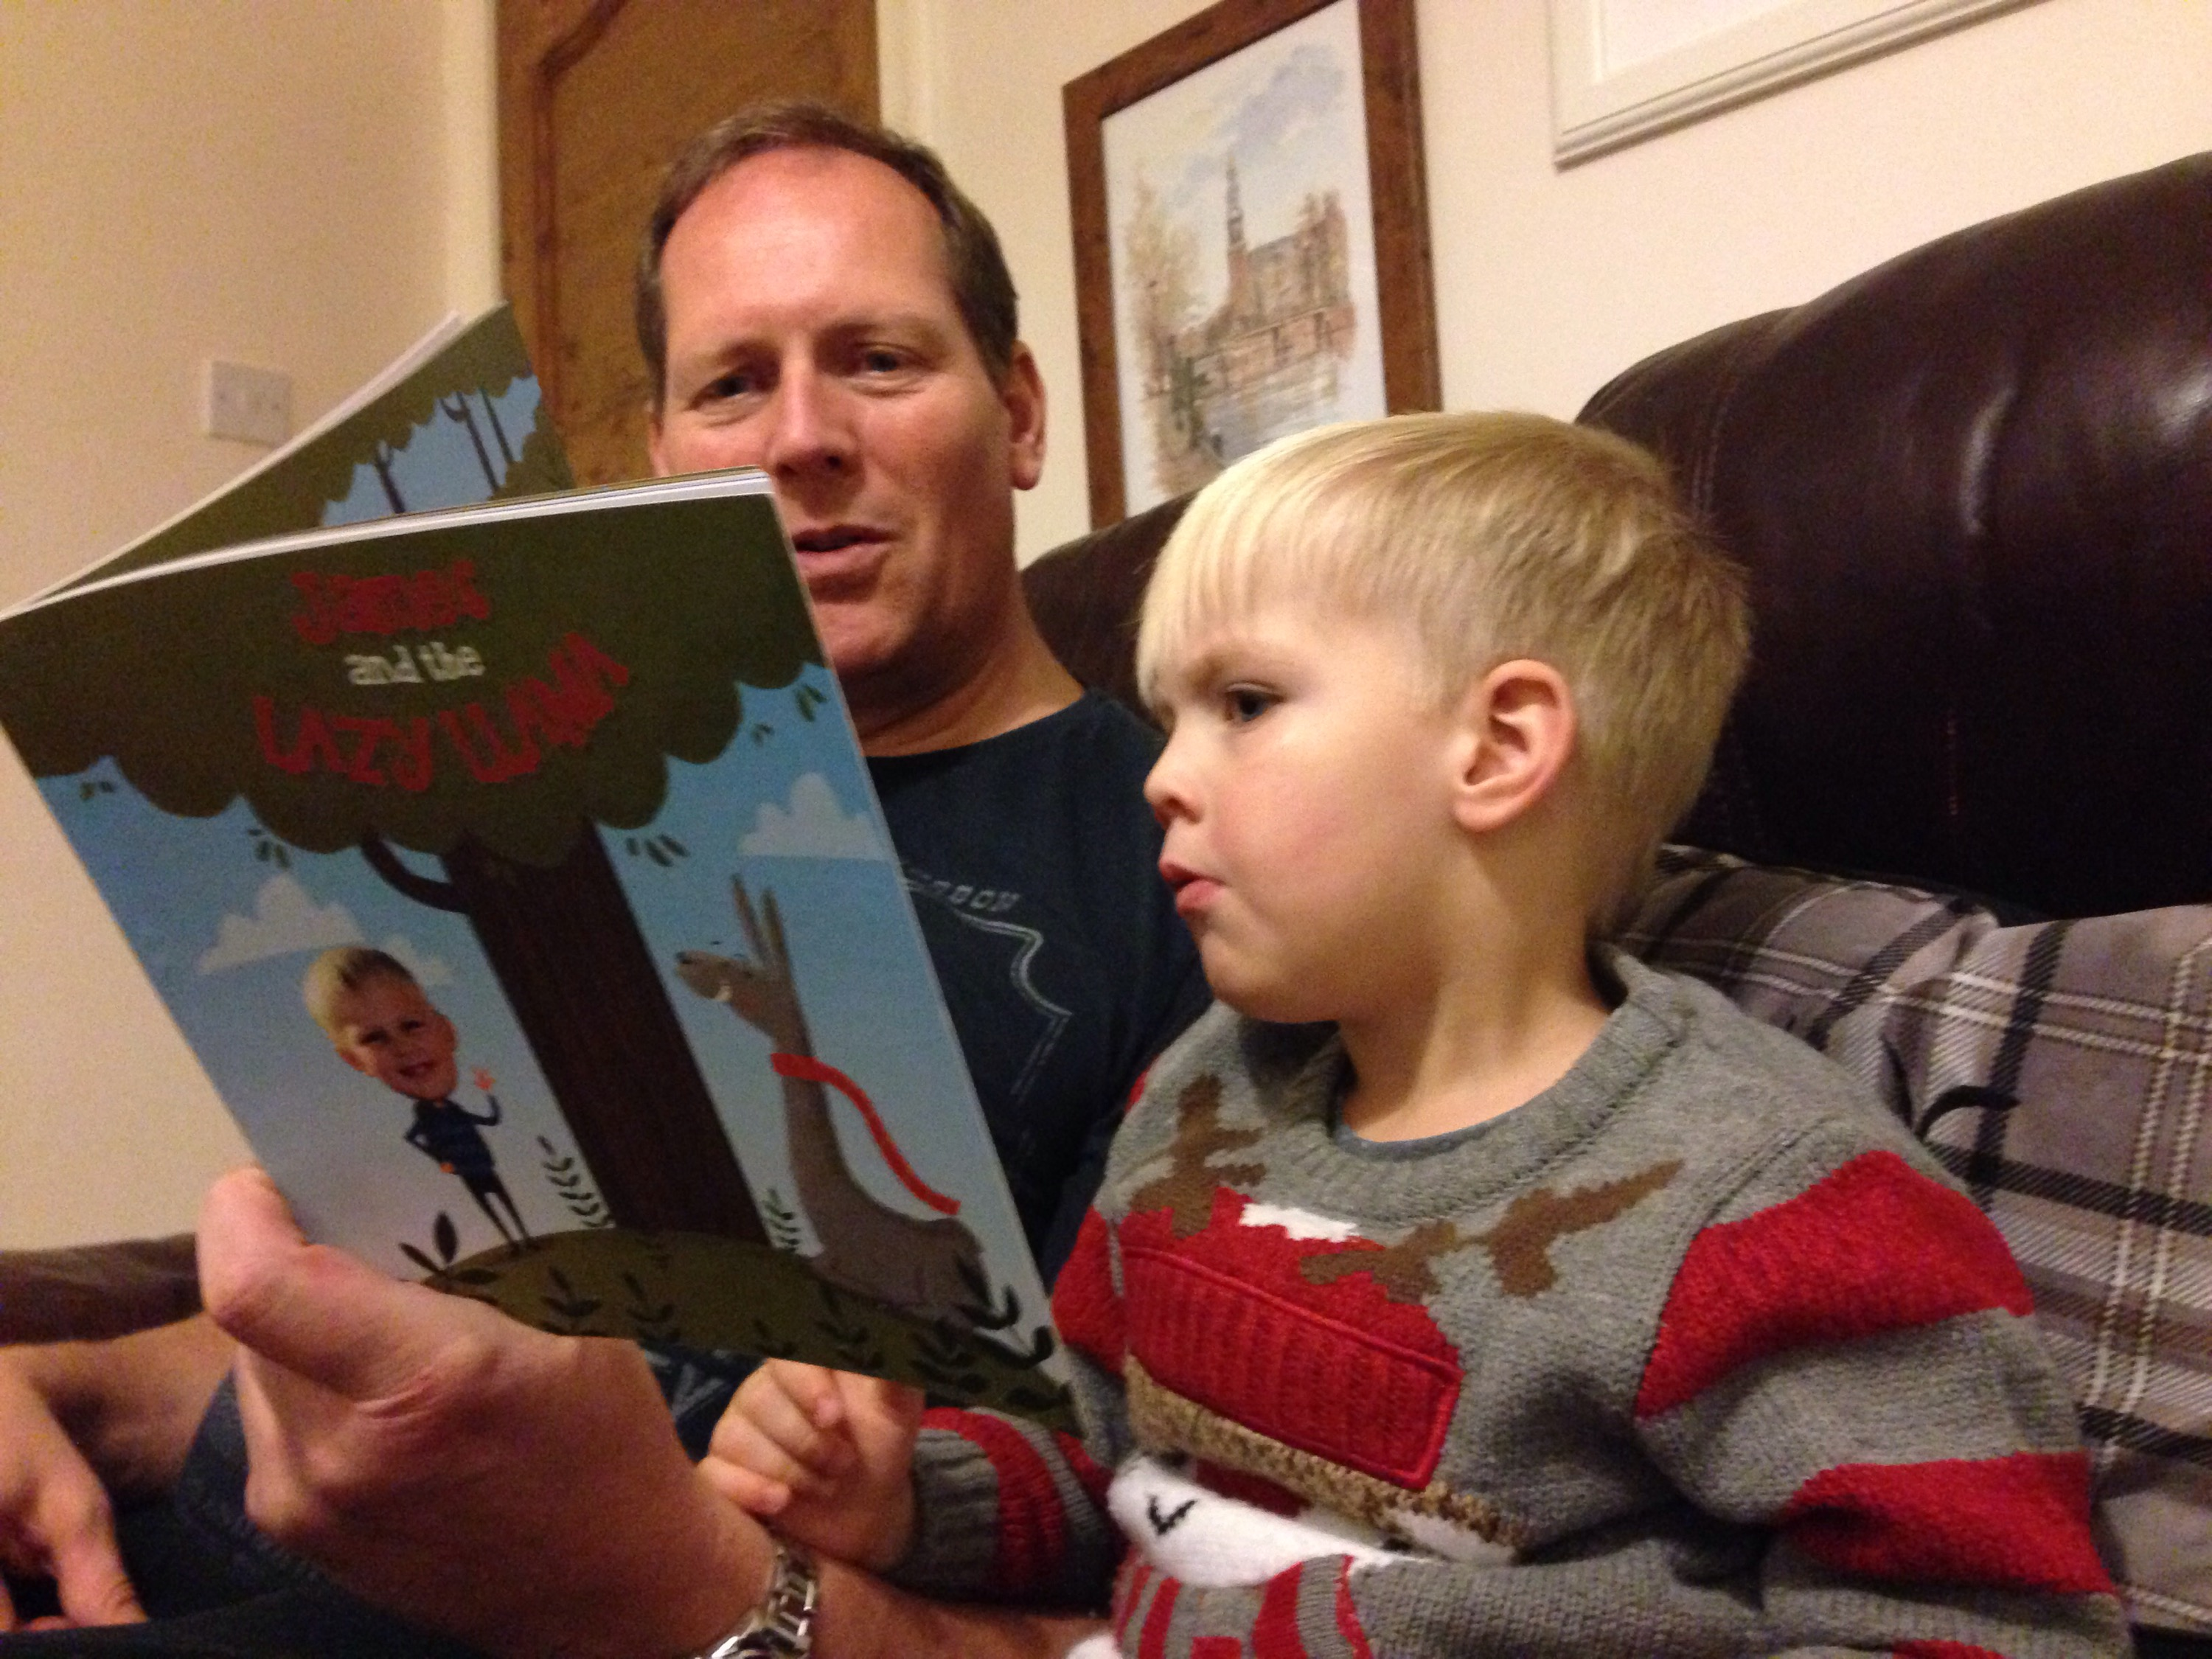 daddy foote and James read the amazing pages book together